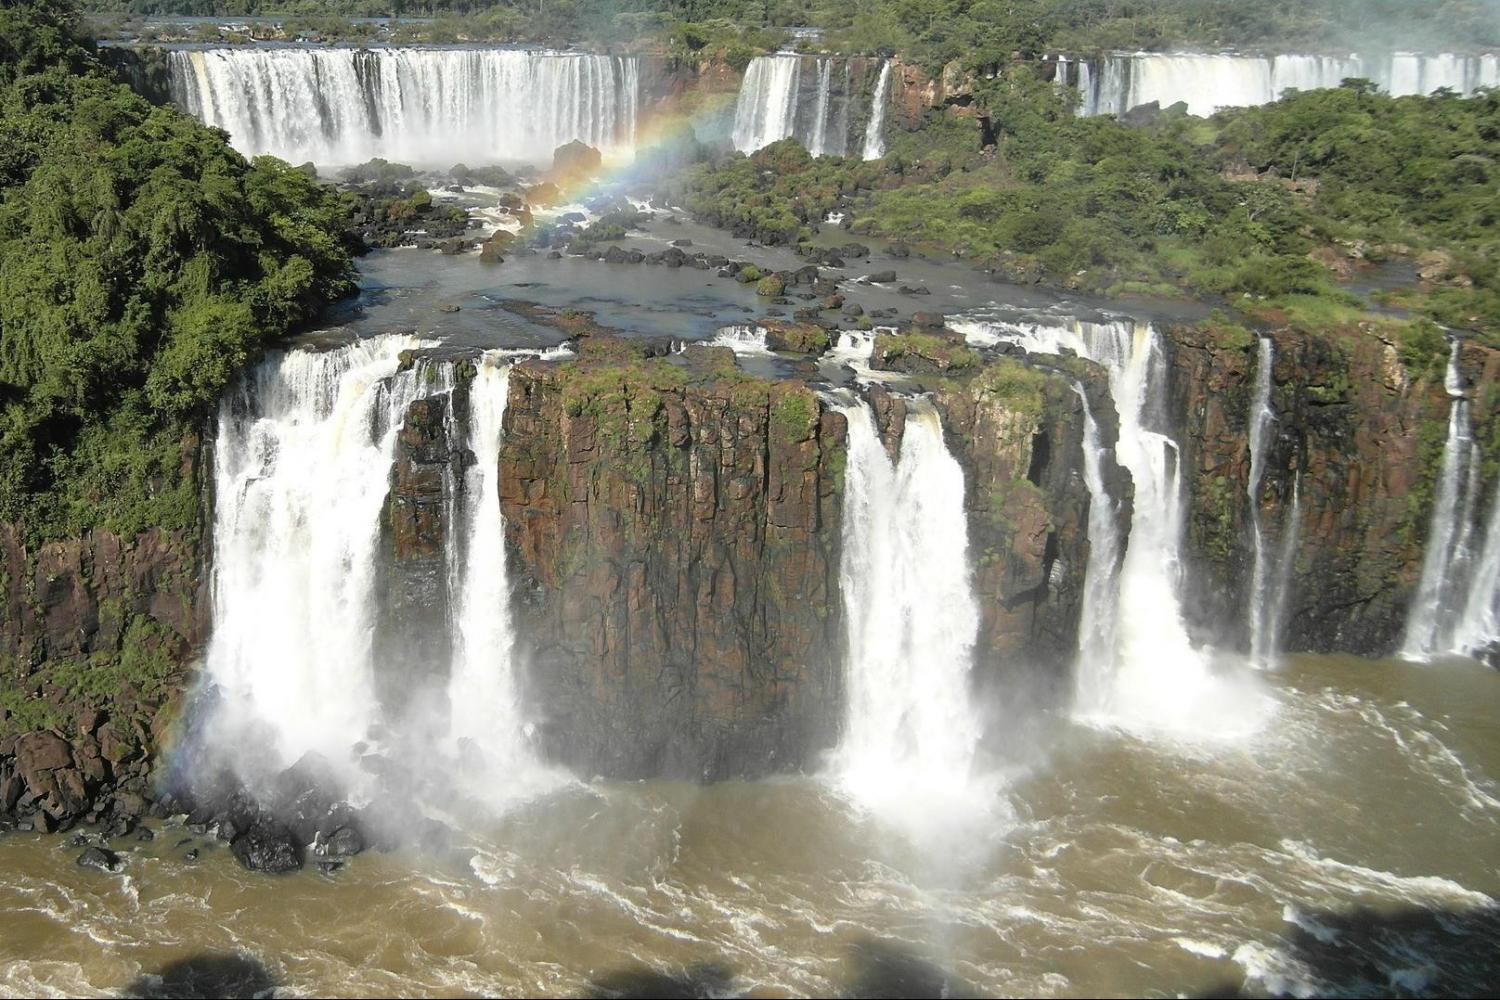 One of the most beautiful falls in the world